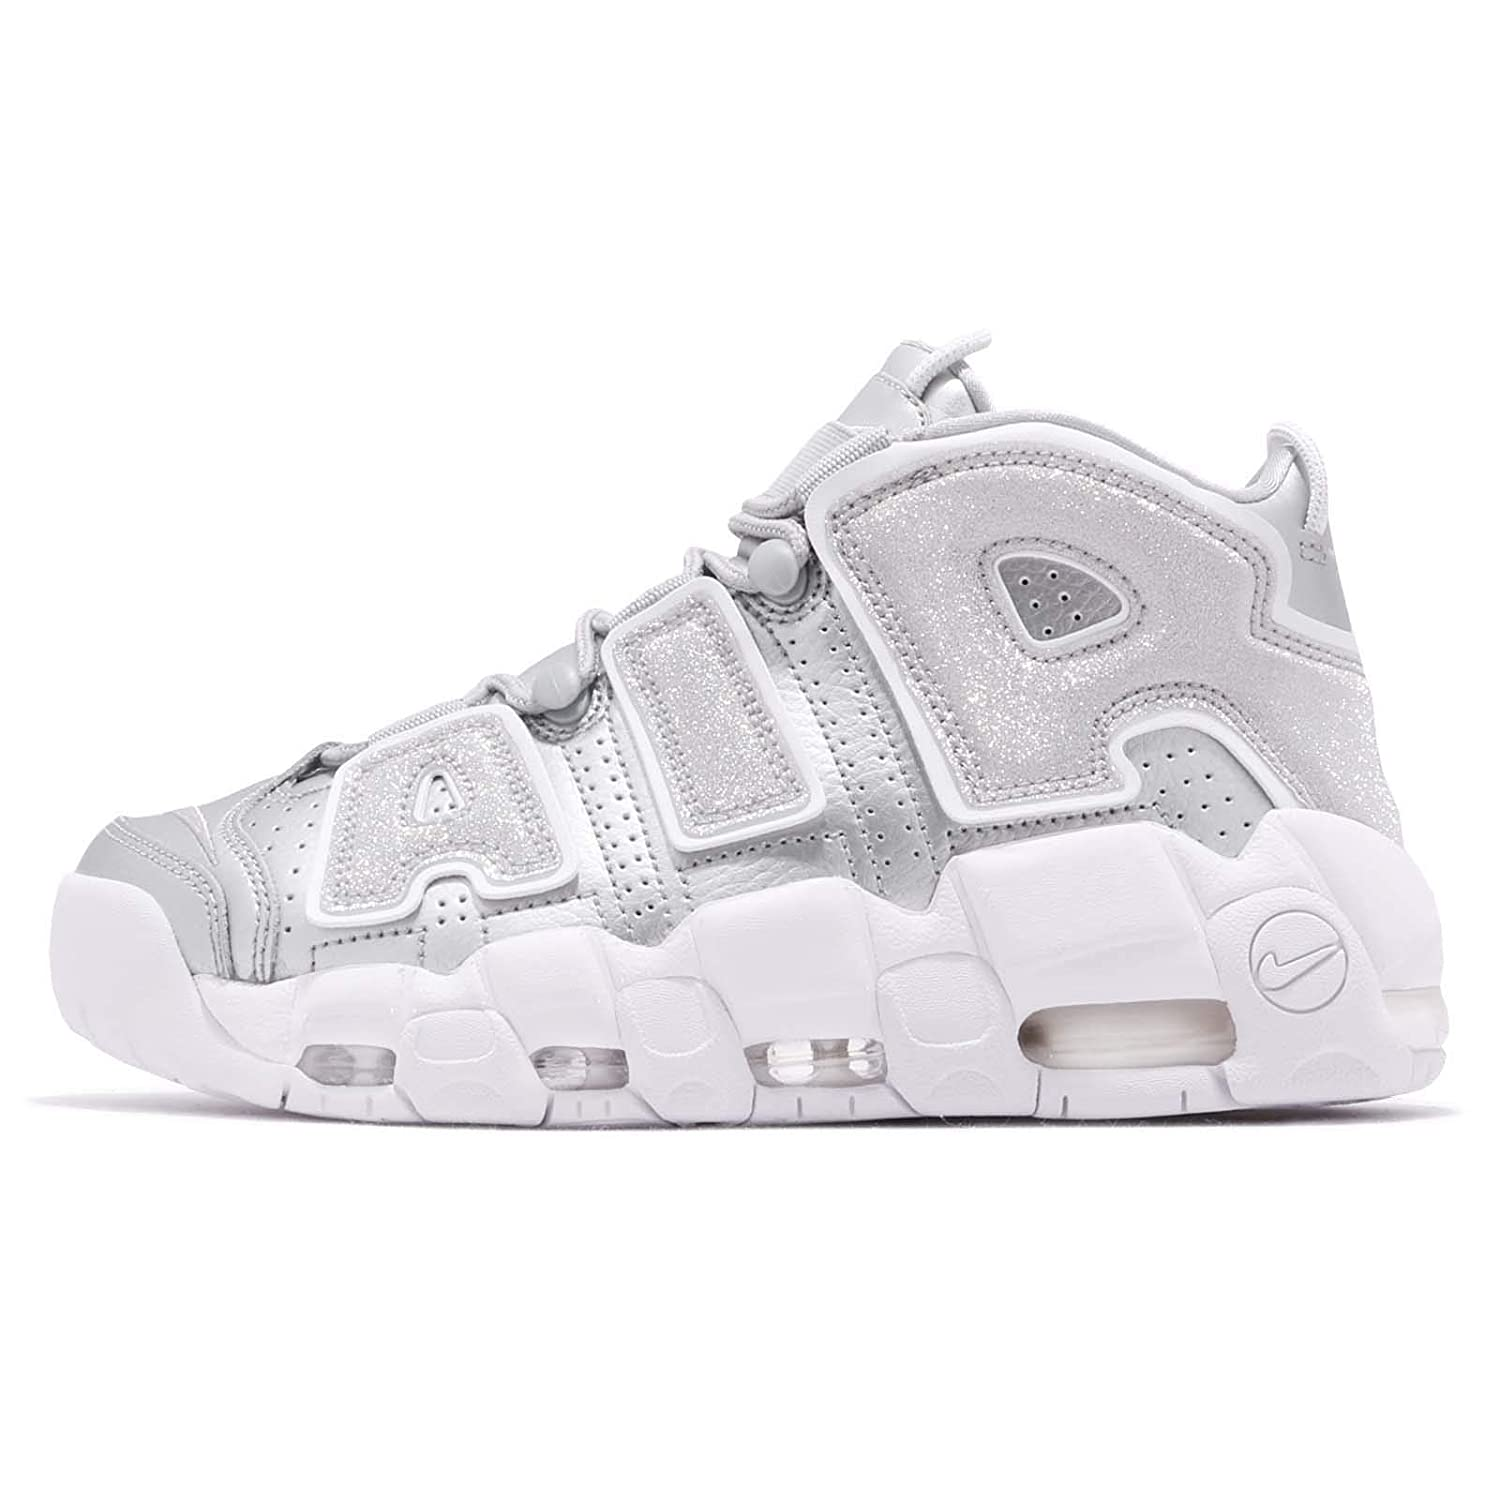 Nike Women's WAIR More Uptempo Low Top Sneakers, Multicolour